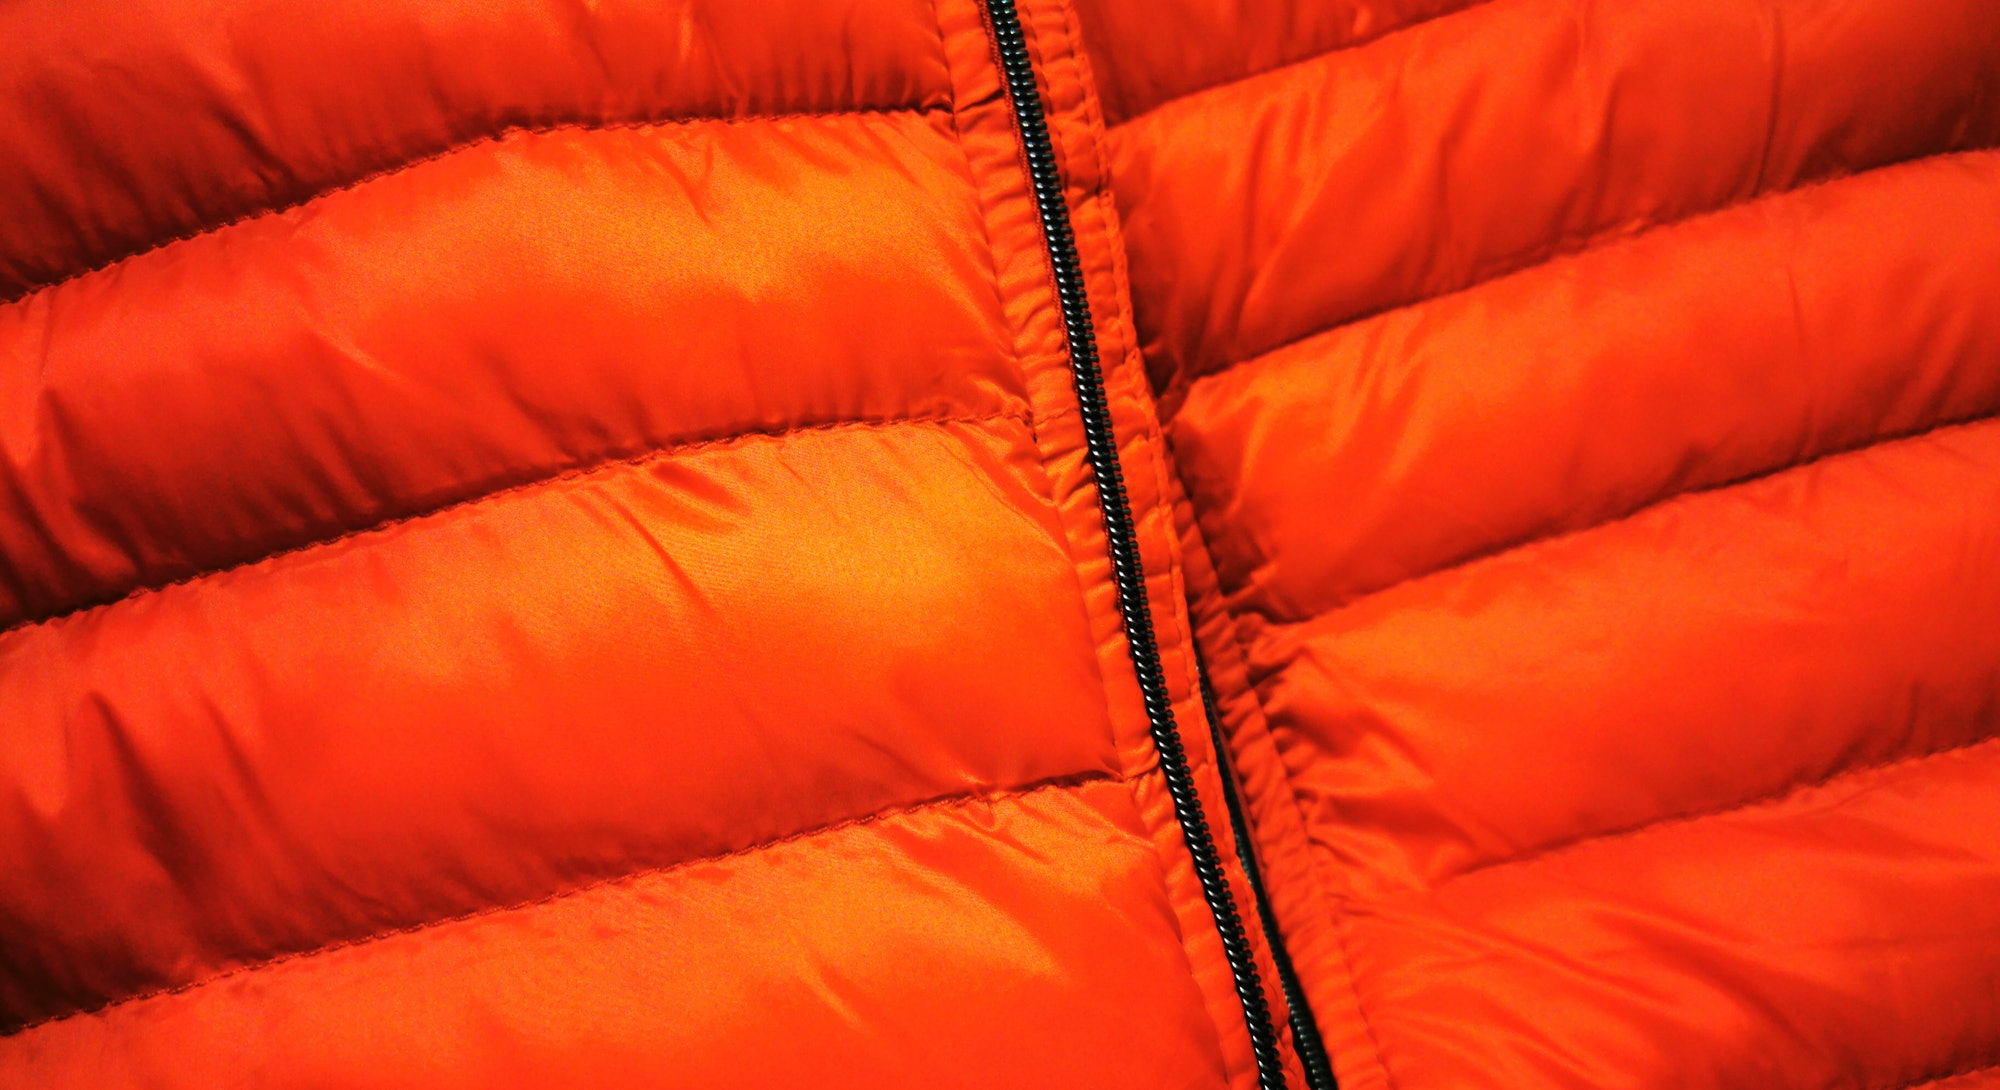 puffer jacket closeup in vivid bright red fabric material with black zip